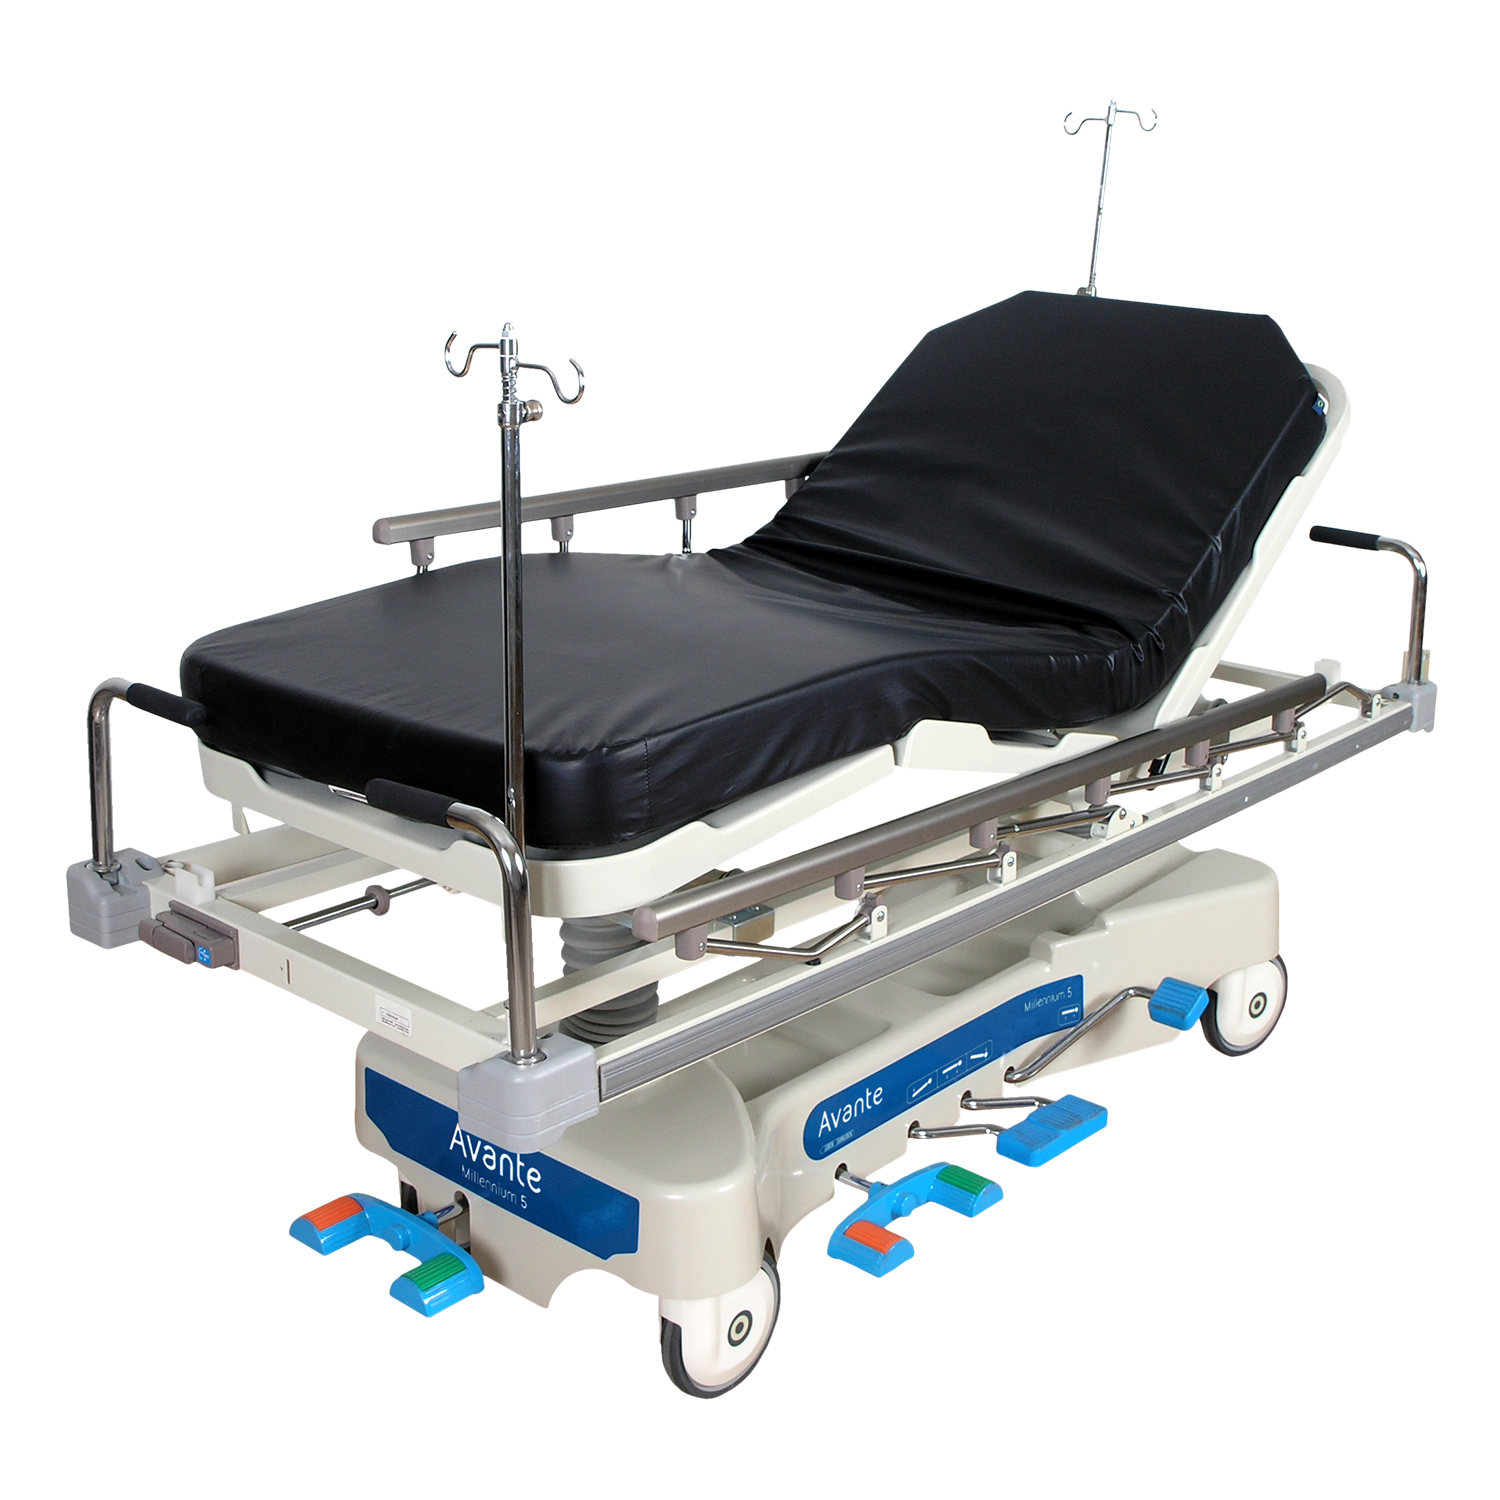 Avante Millennium 5 Hospital Stretcher